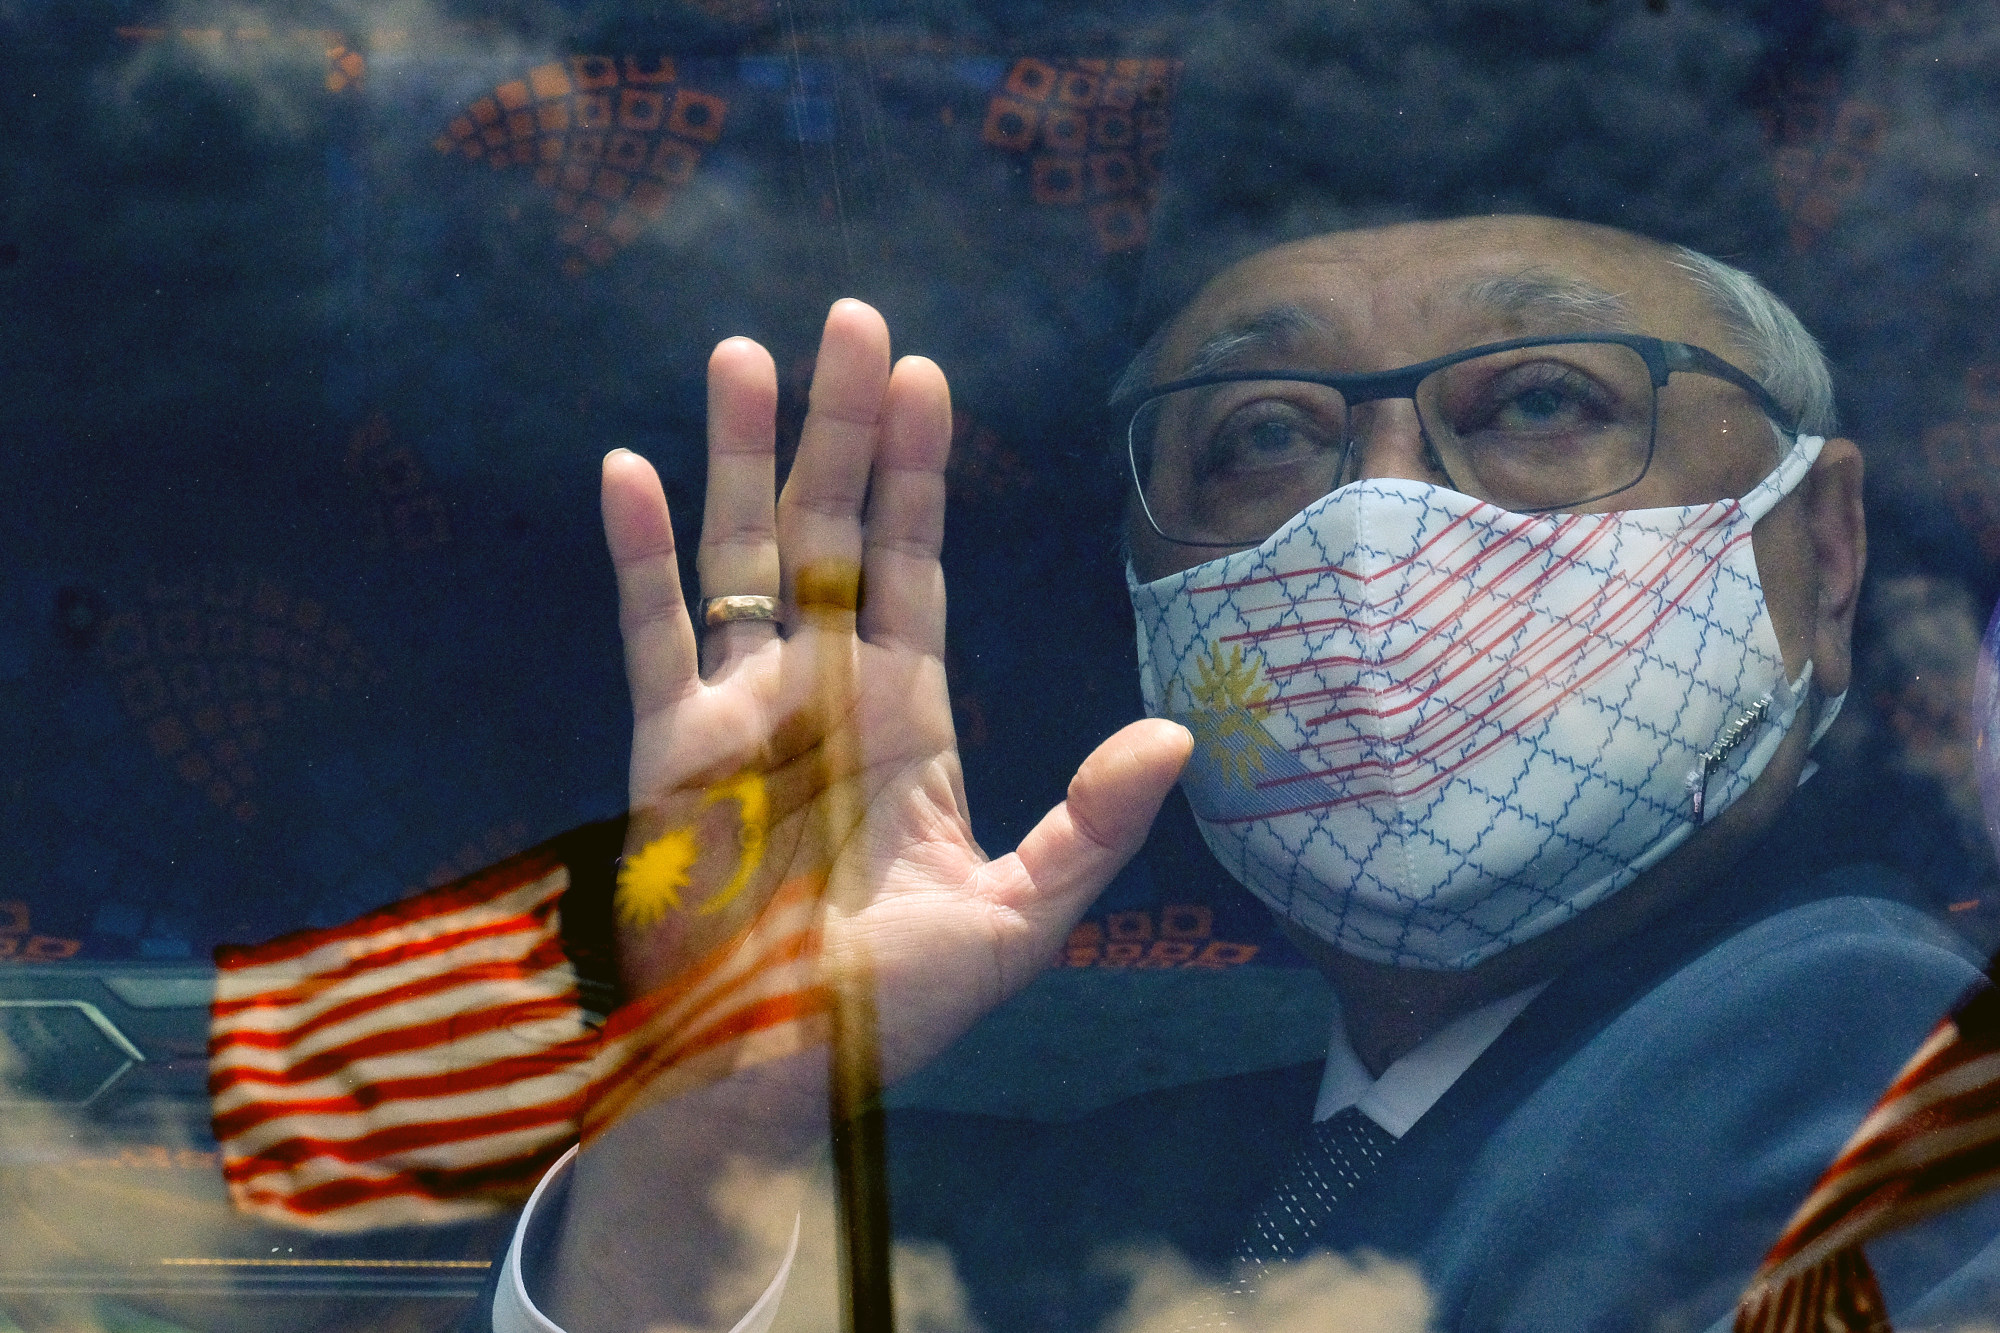 Malaysia's new Prime Minister Ismail Sabri Yaakob waves from a bus. Photo: Bloomberg